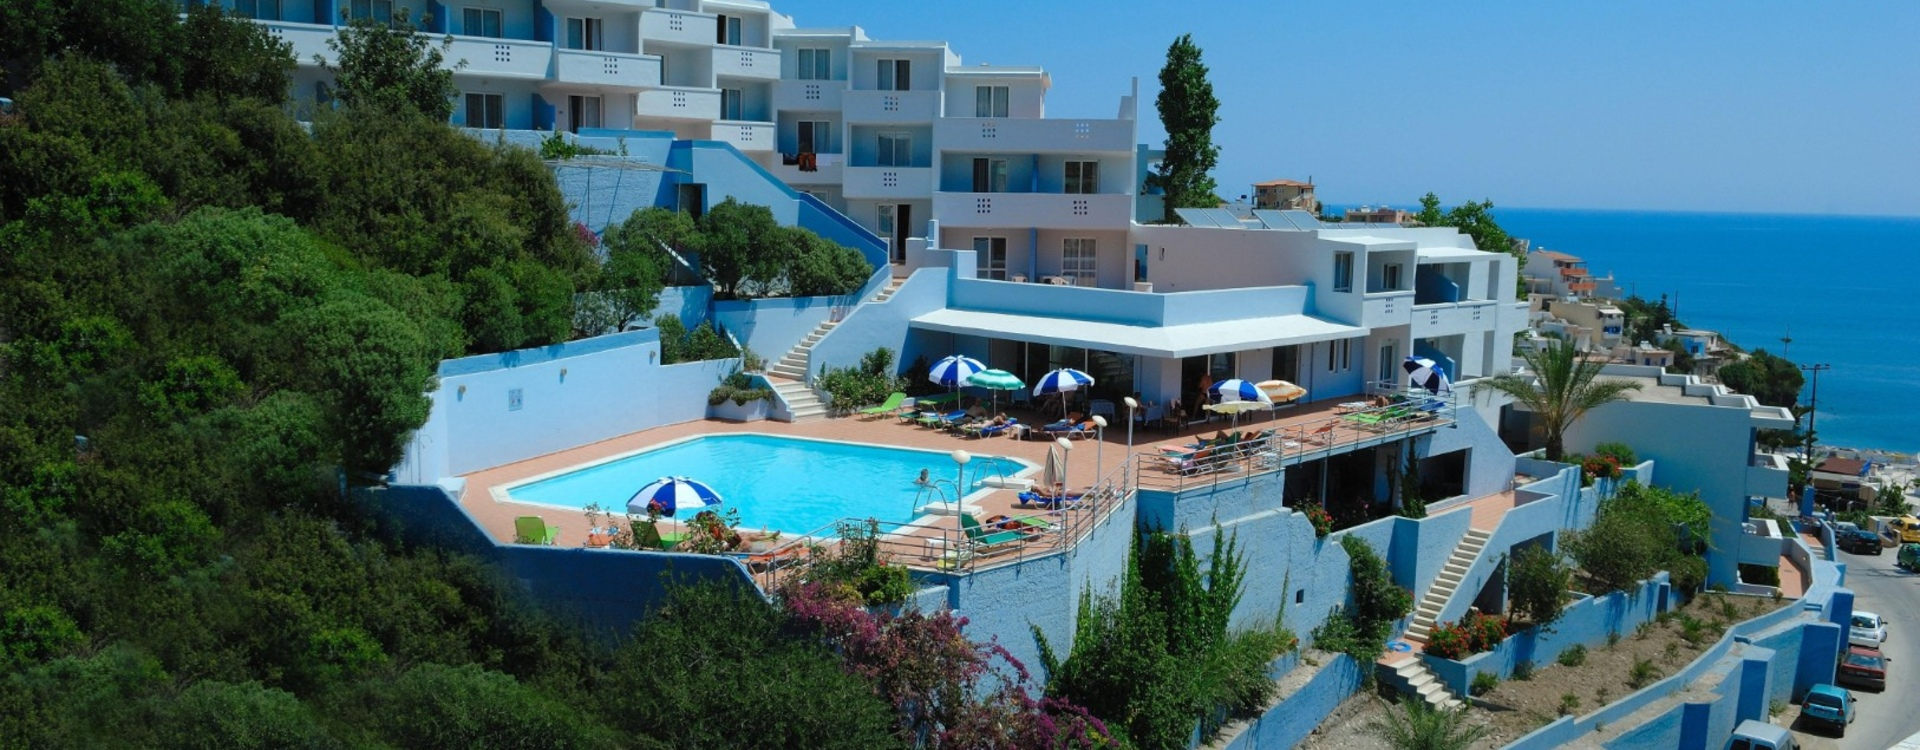 ALDEMAR CRETAN VILLAGE BEACH RESORT 4+* All Inclusive